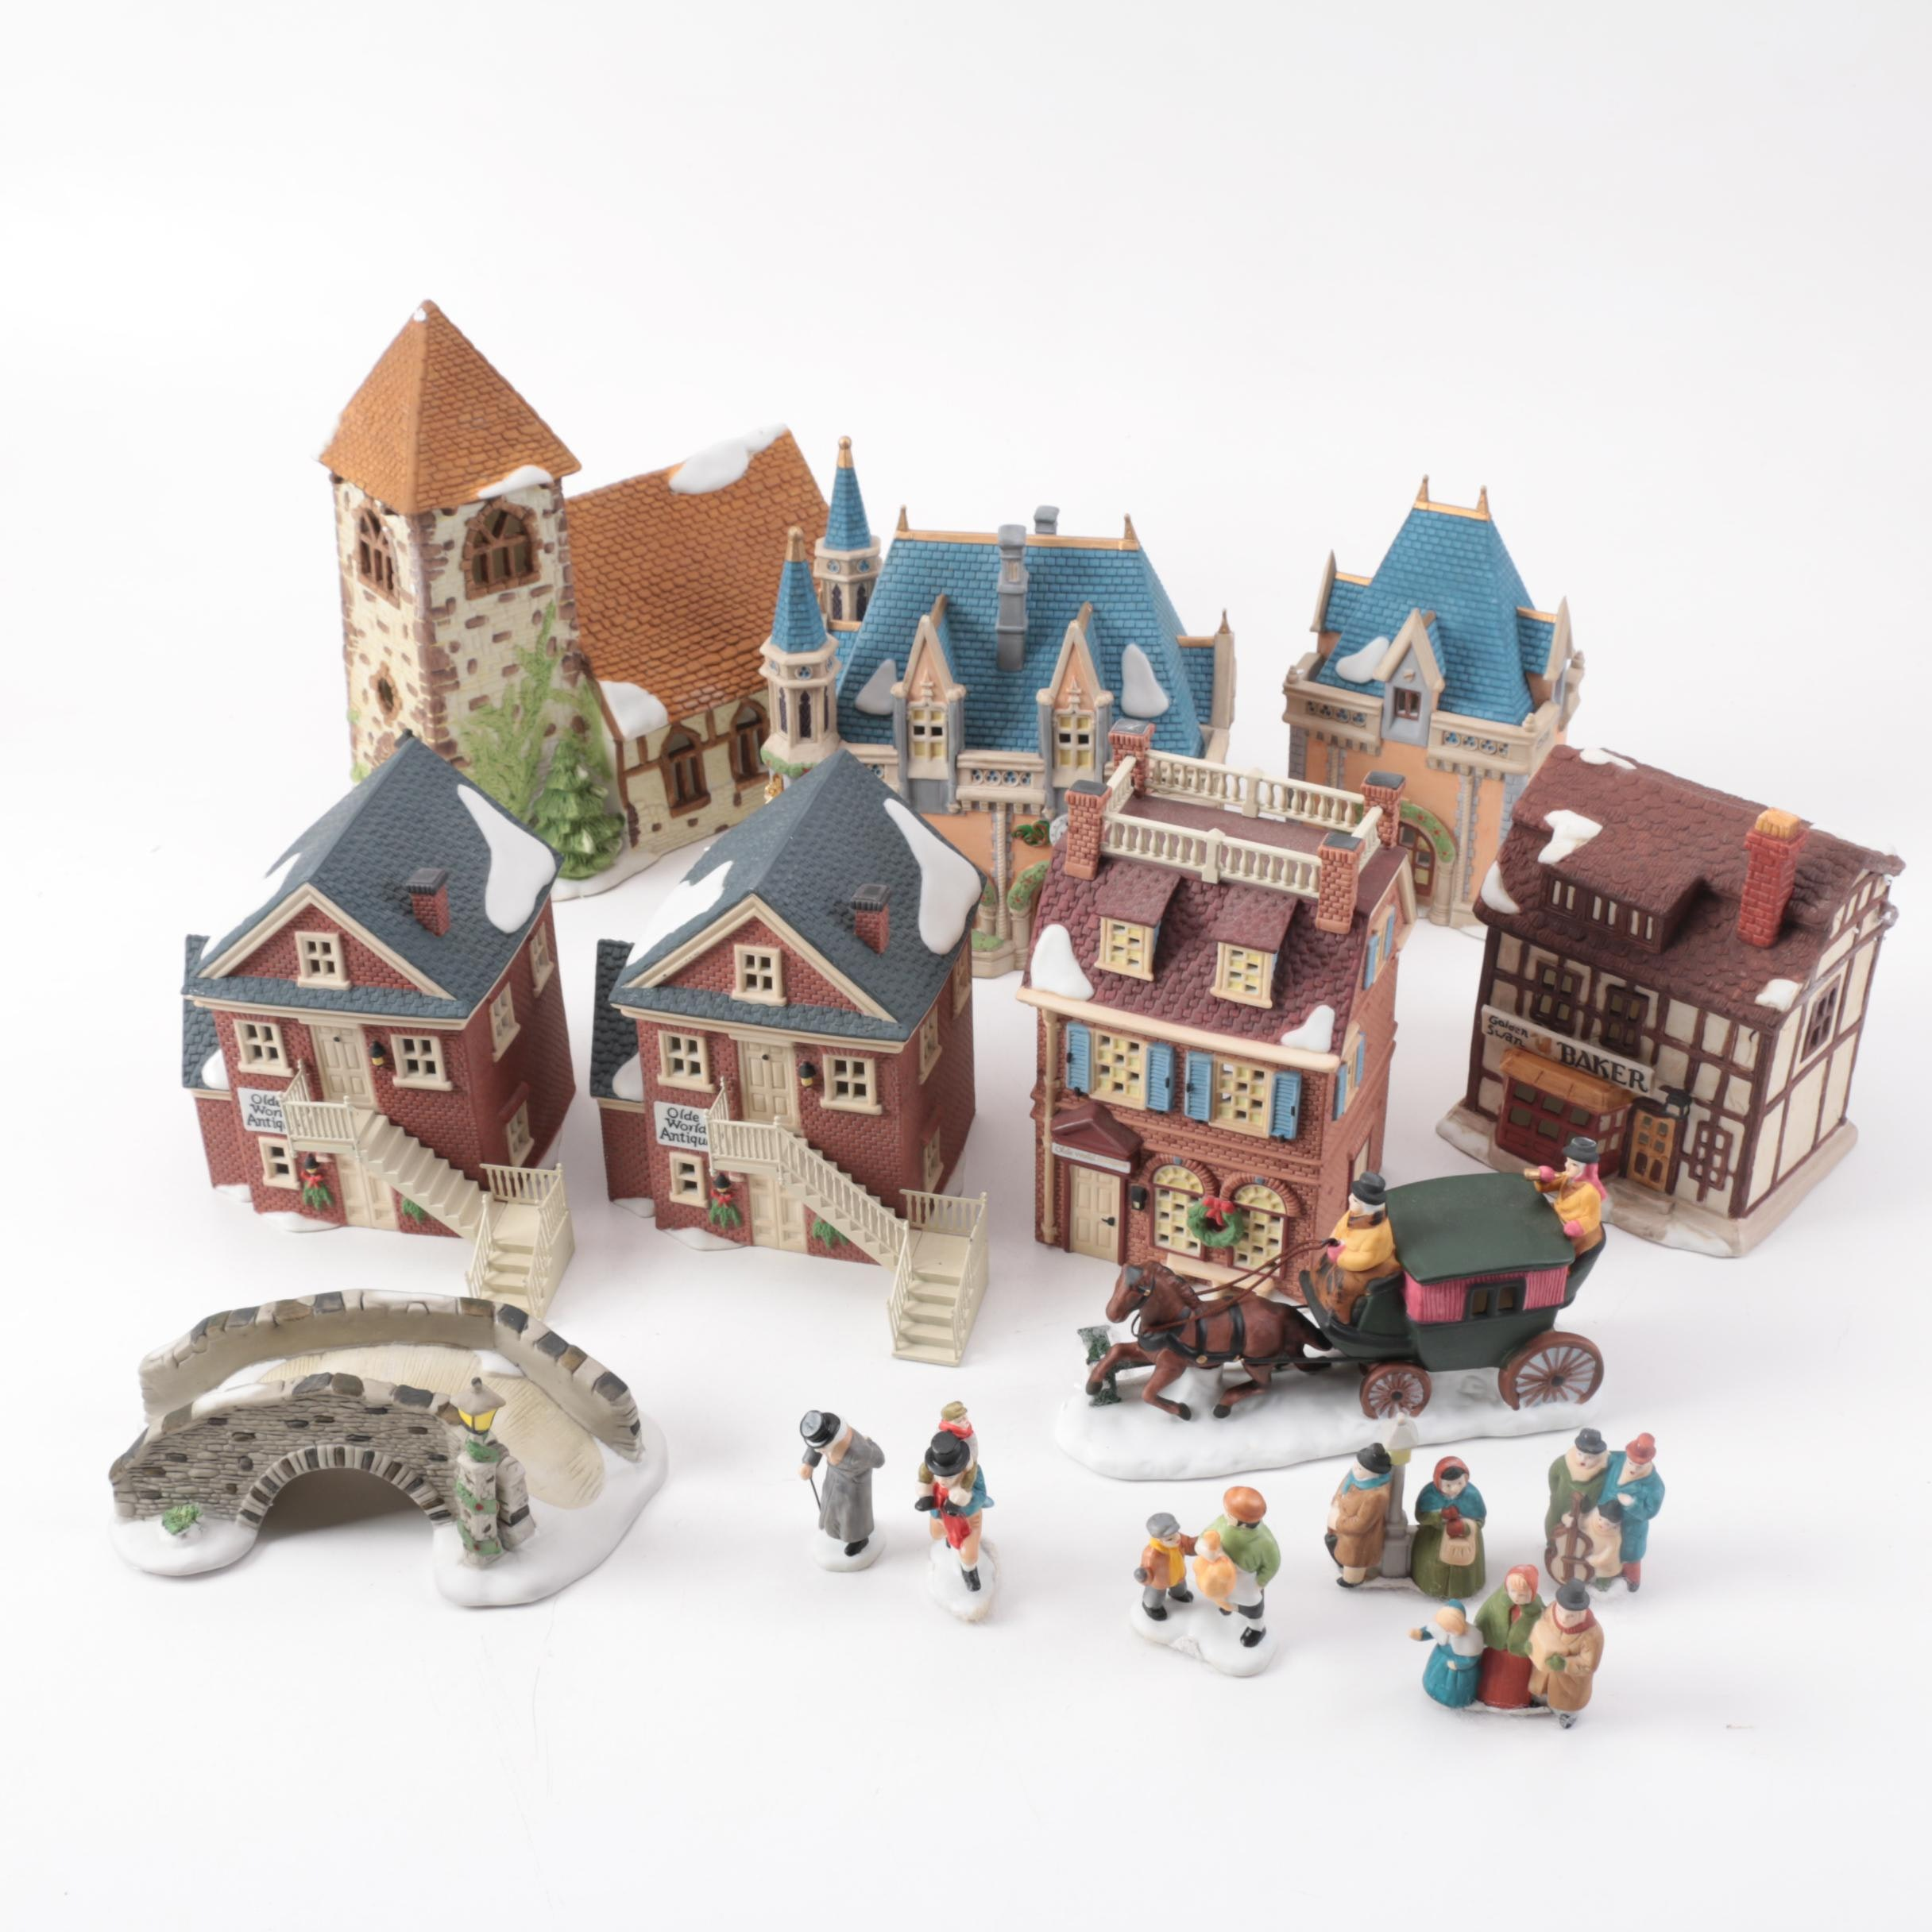 Large Group of Department 56 Village Buildings and Accessories